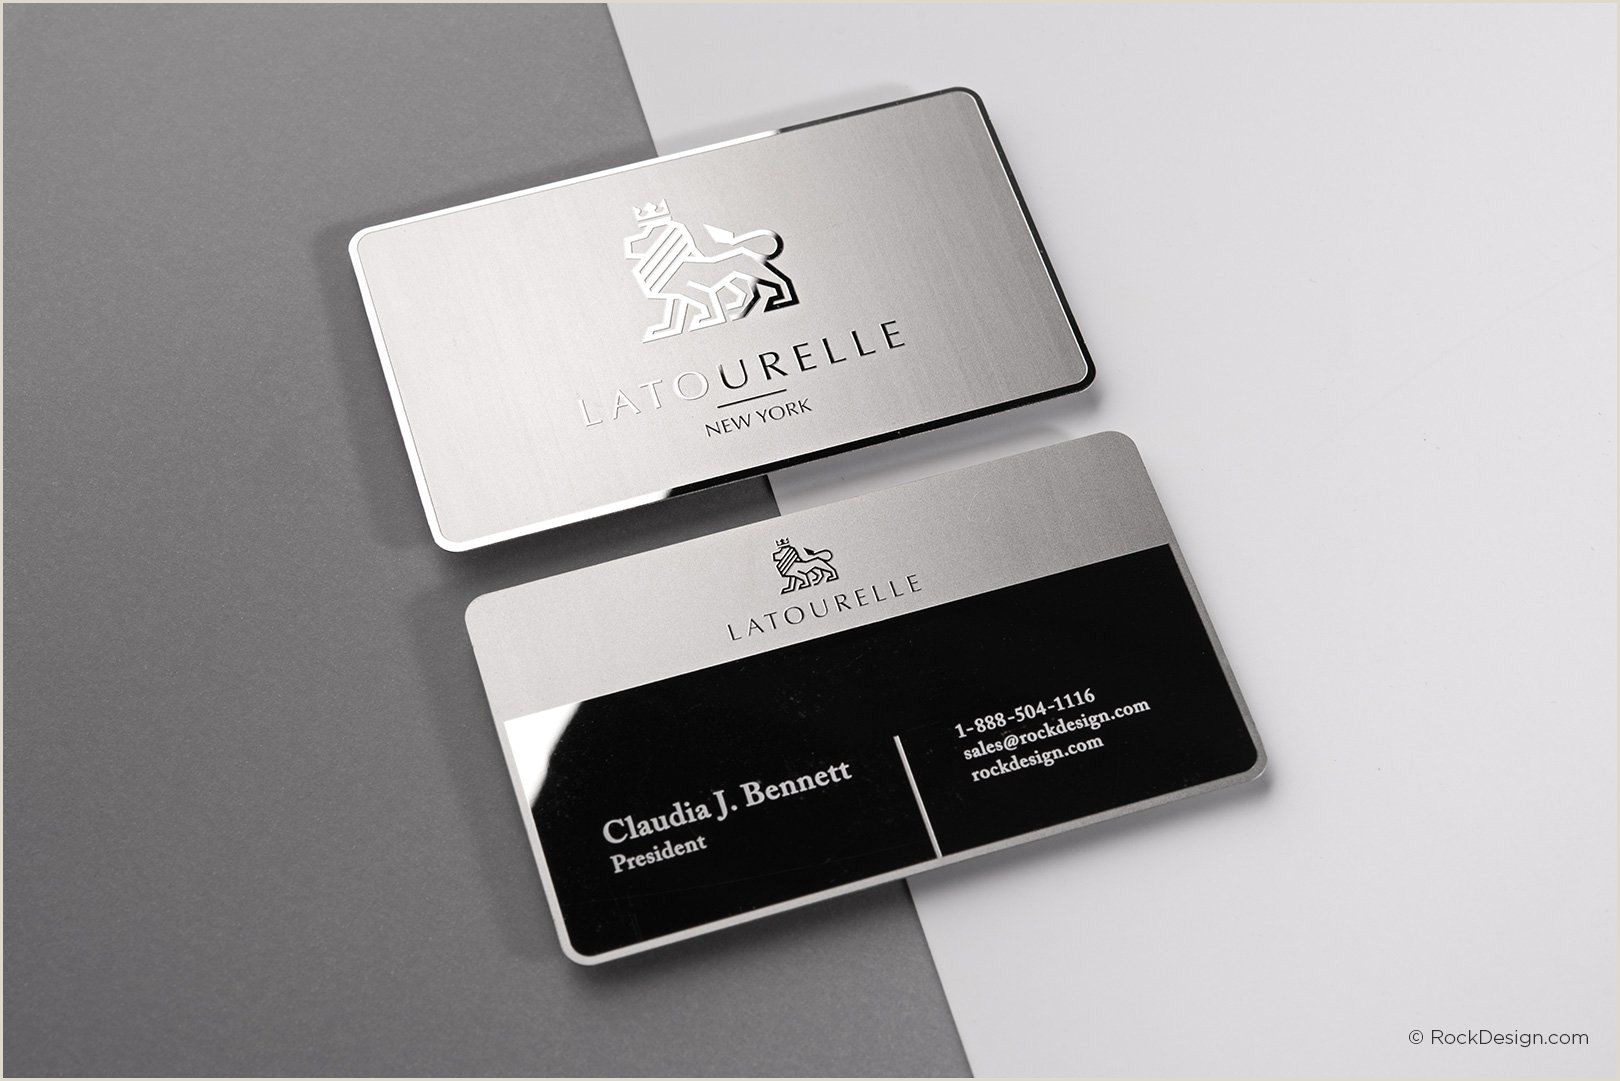 Best Business Cards At A Low Cost Free Lawyer Business Card Template Rockdesign